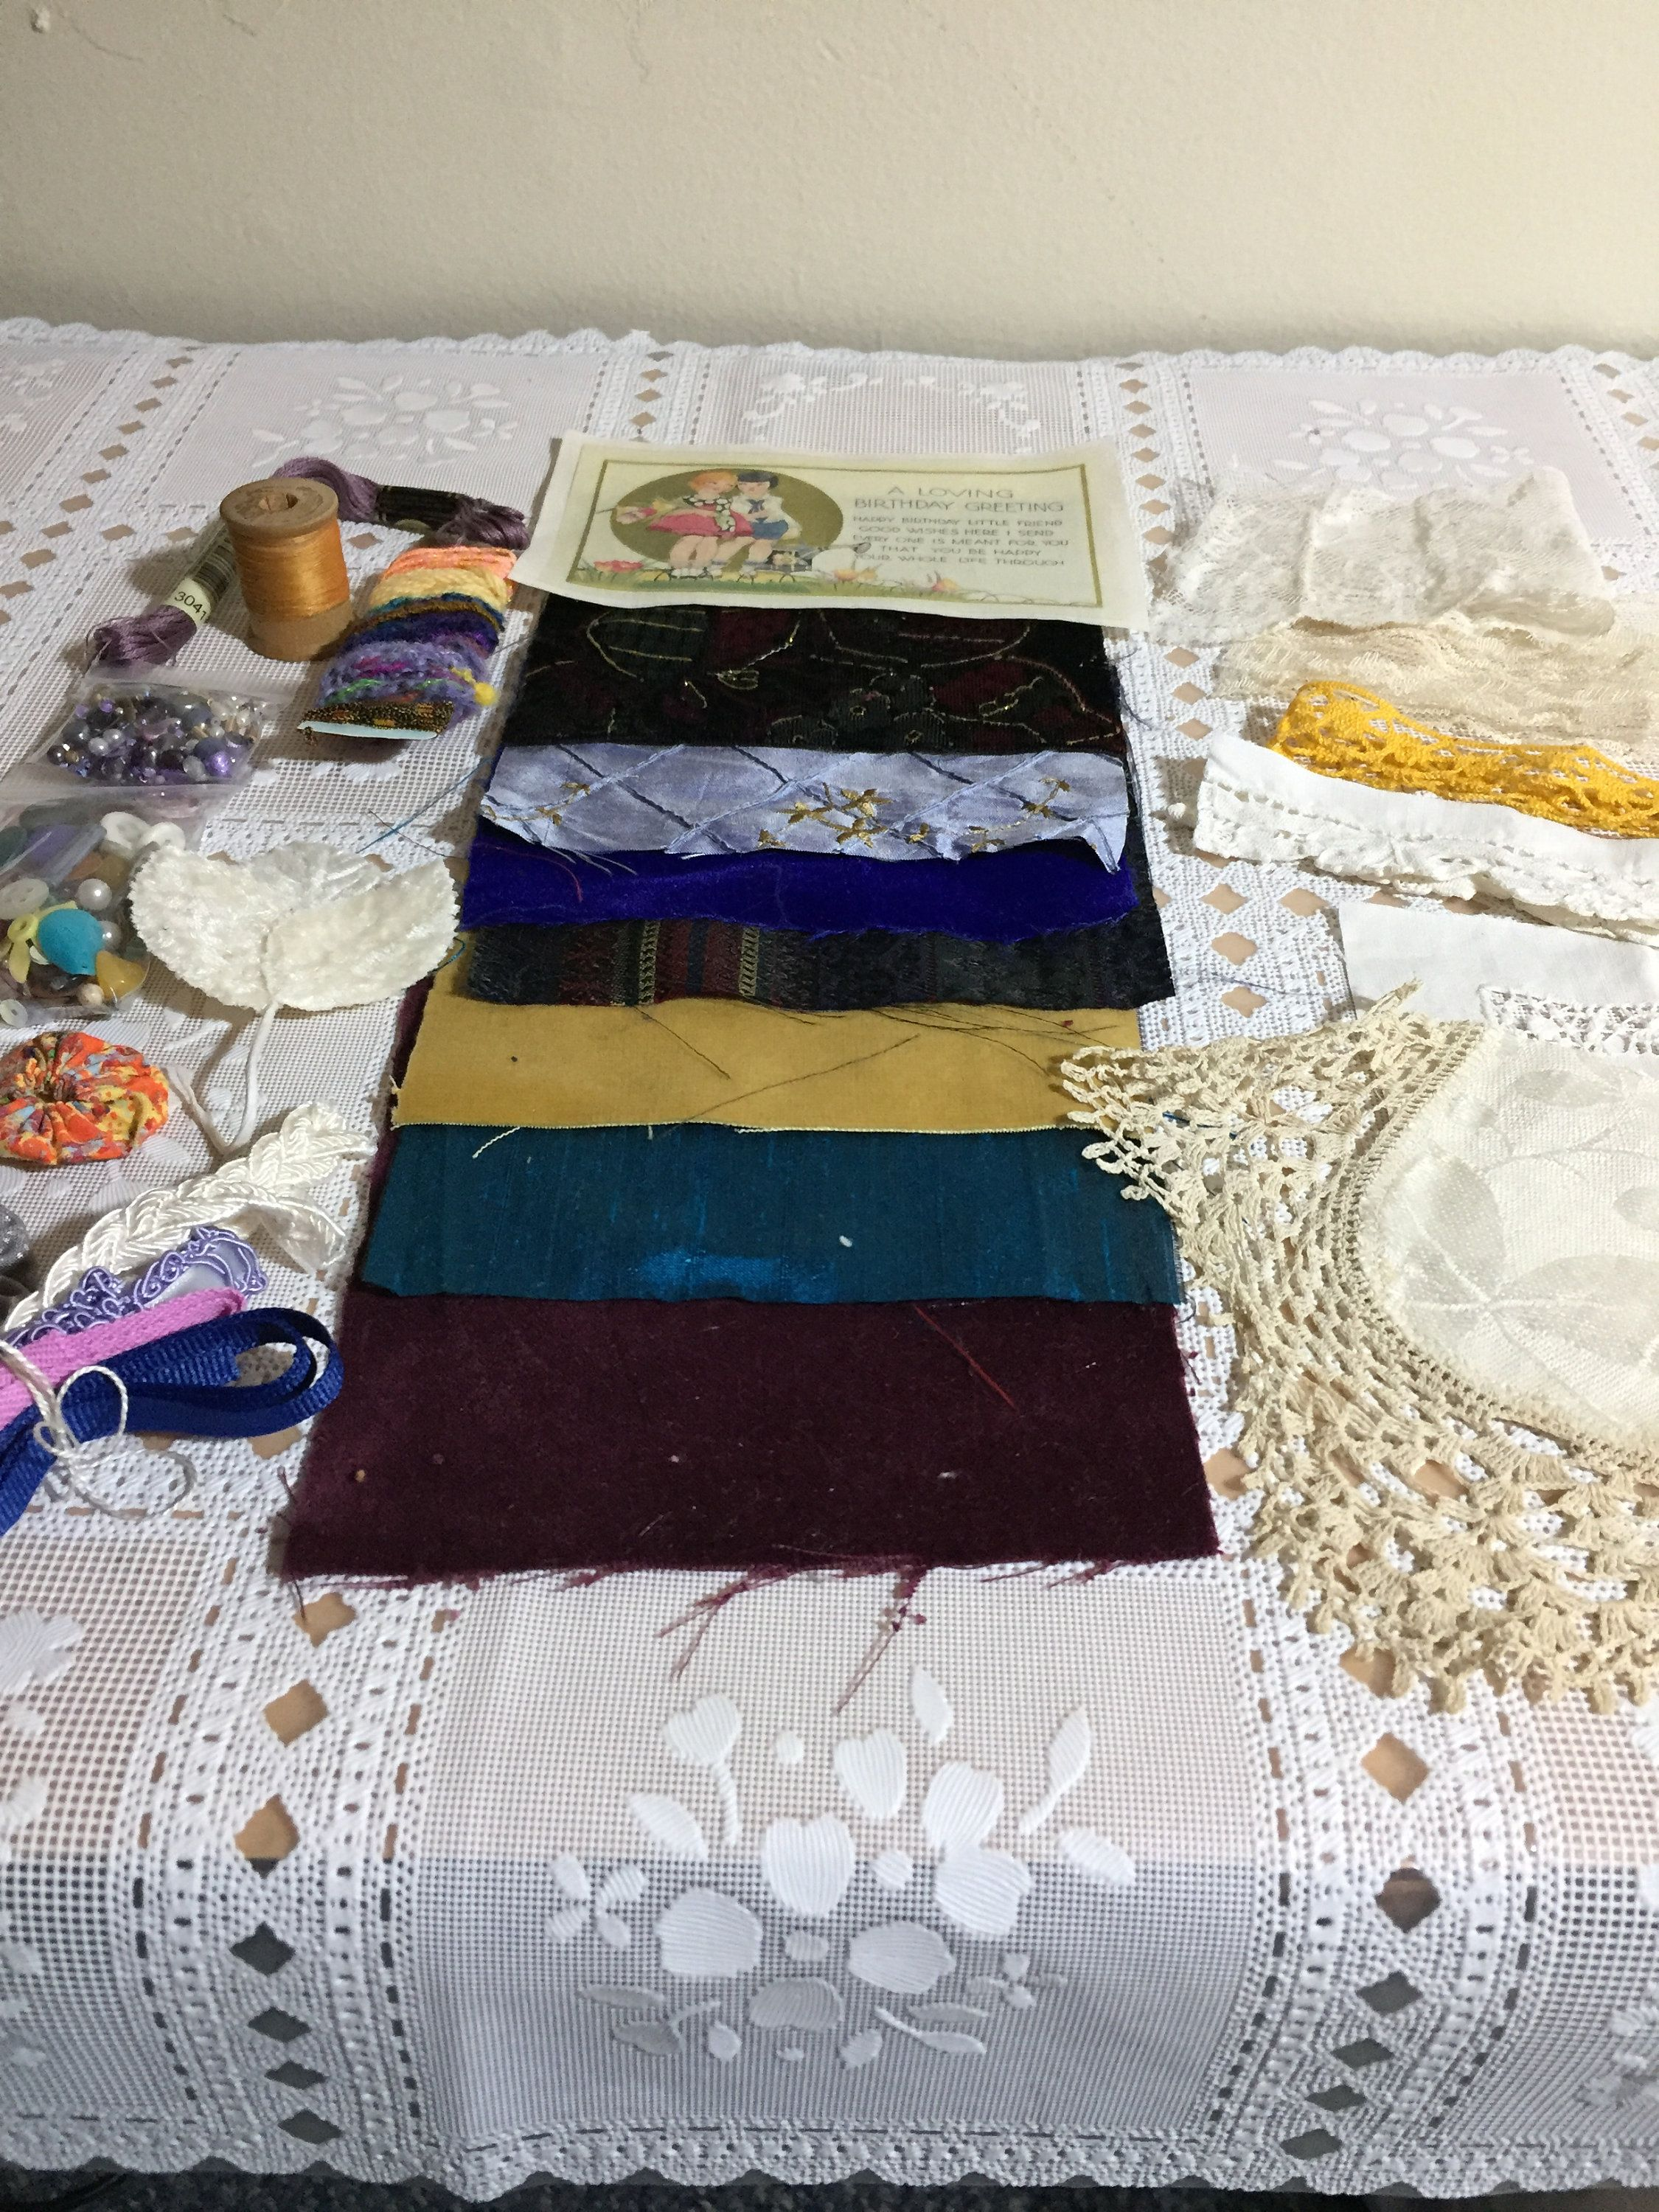 Crazy Quilt Fabric And Embellishment Pack New And Vintage Laces Trims Buttons Beads Embroidery And More Lot Cq5 Fast S Crazy Quilts Quilts Quilt Fabric